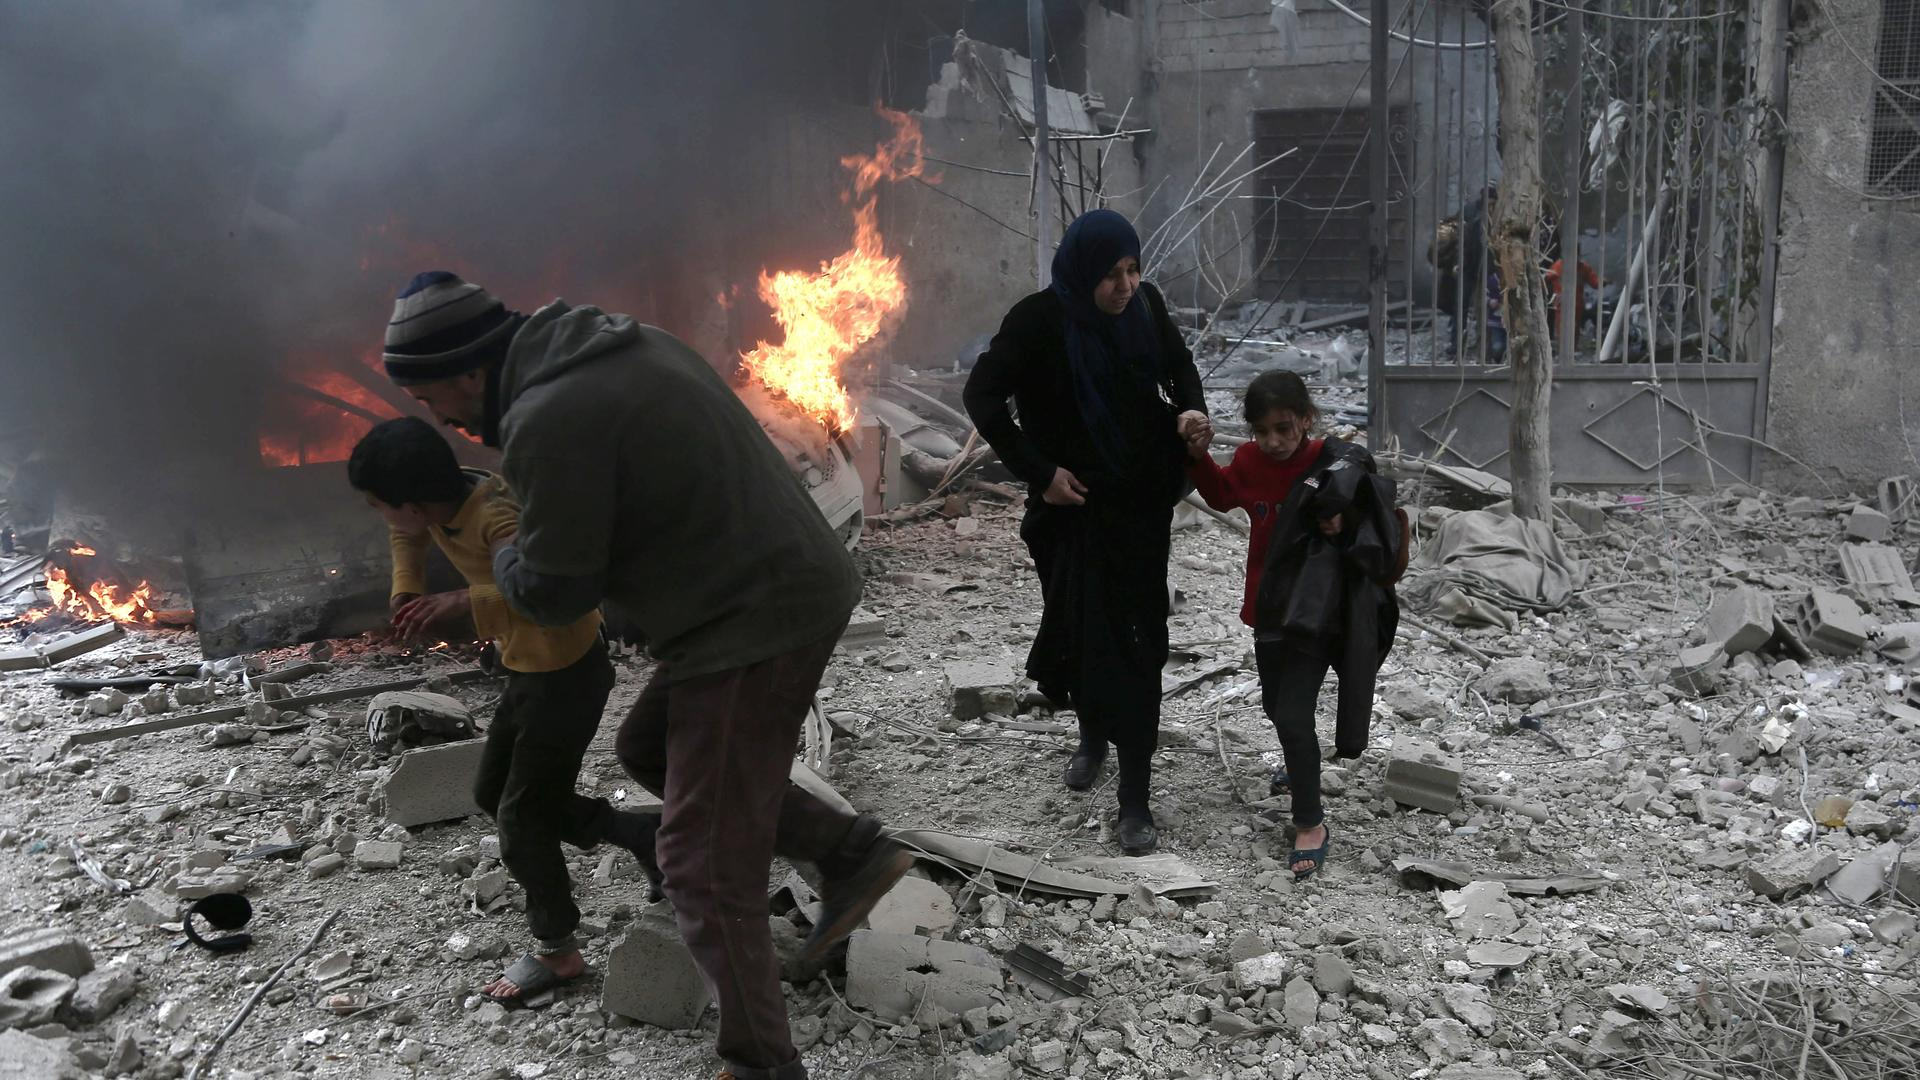 Syrian civilians run for cover from bombardment in Eastern Ghouta, Syria. Photo: Abdulmonam Eassa/AFP